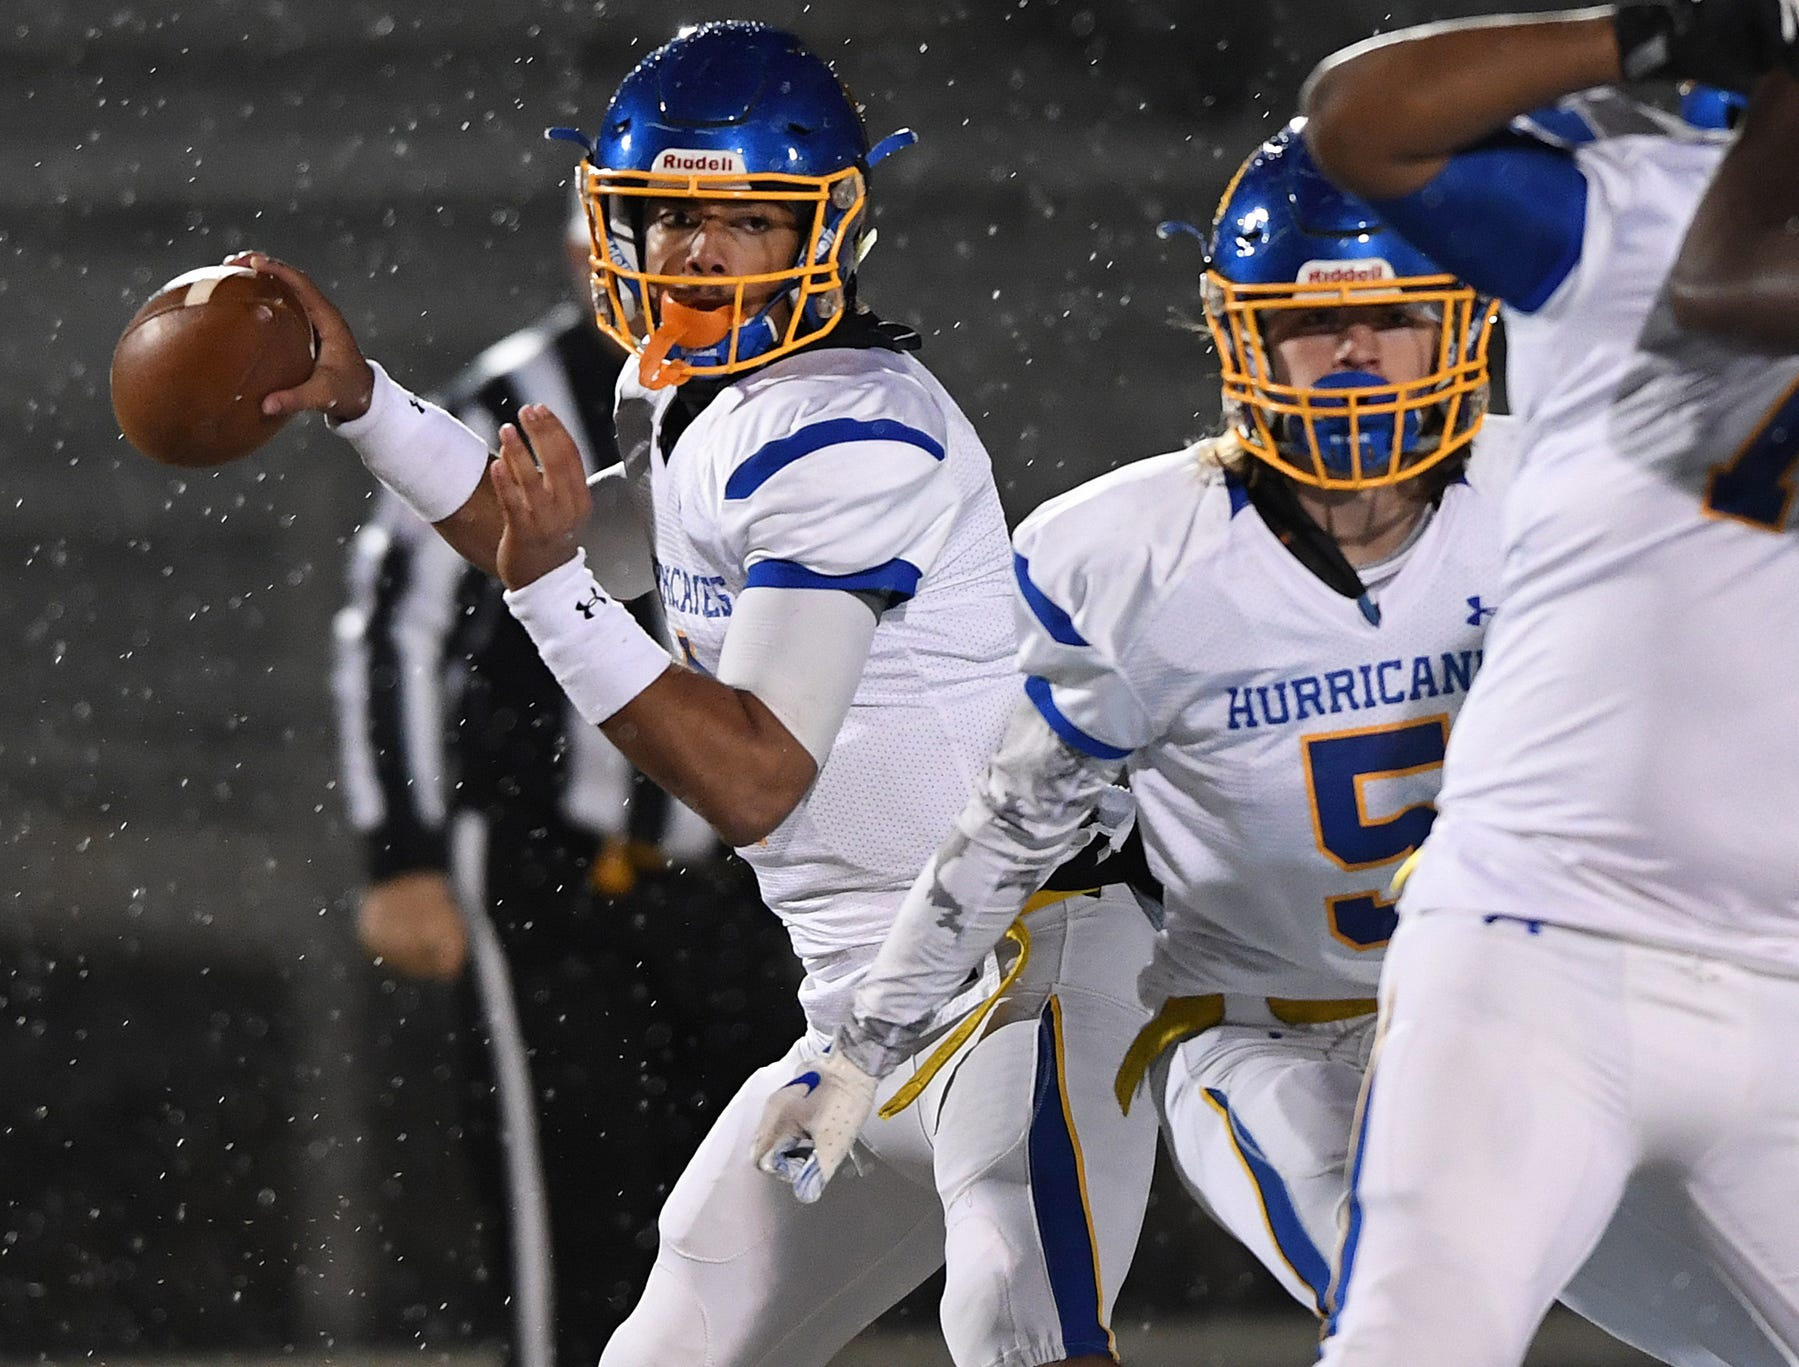 Wren quarterback Tyrell Jackson (1)  passes against Daniel during the third round of the class AAAA playoffs Friday, November 23, 2018, at Daniel High in Central.